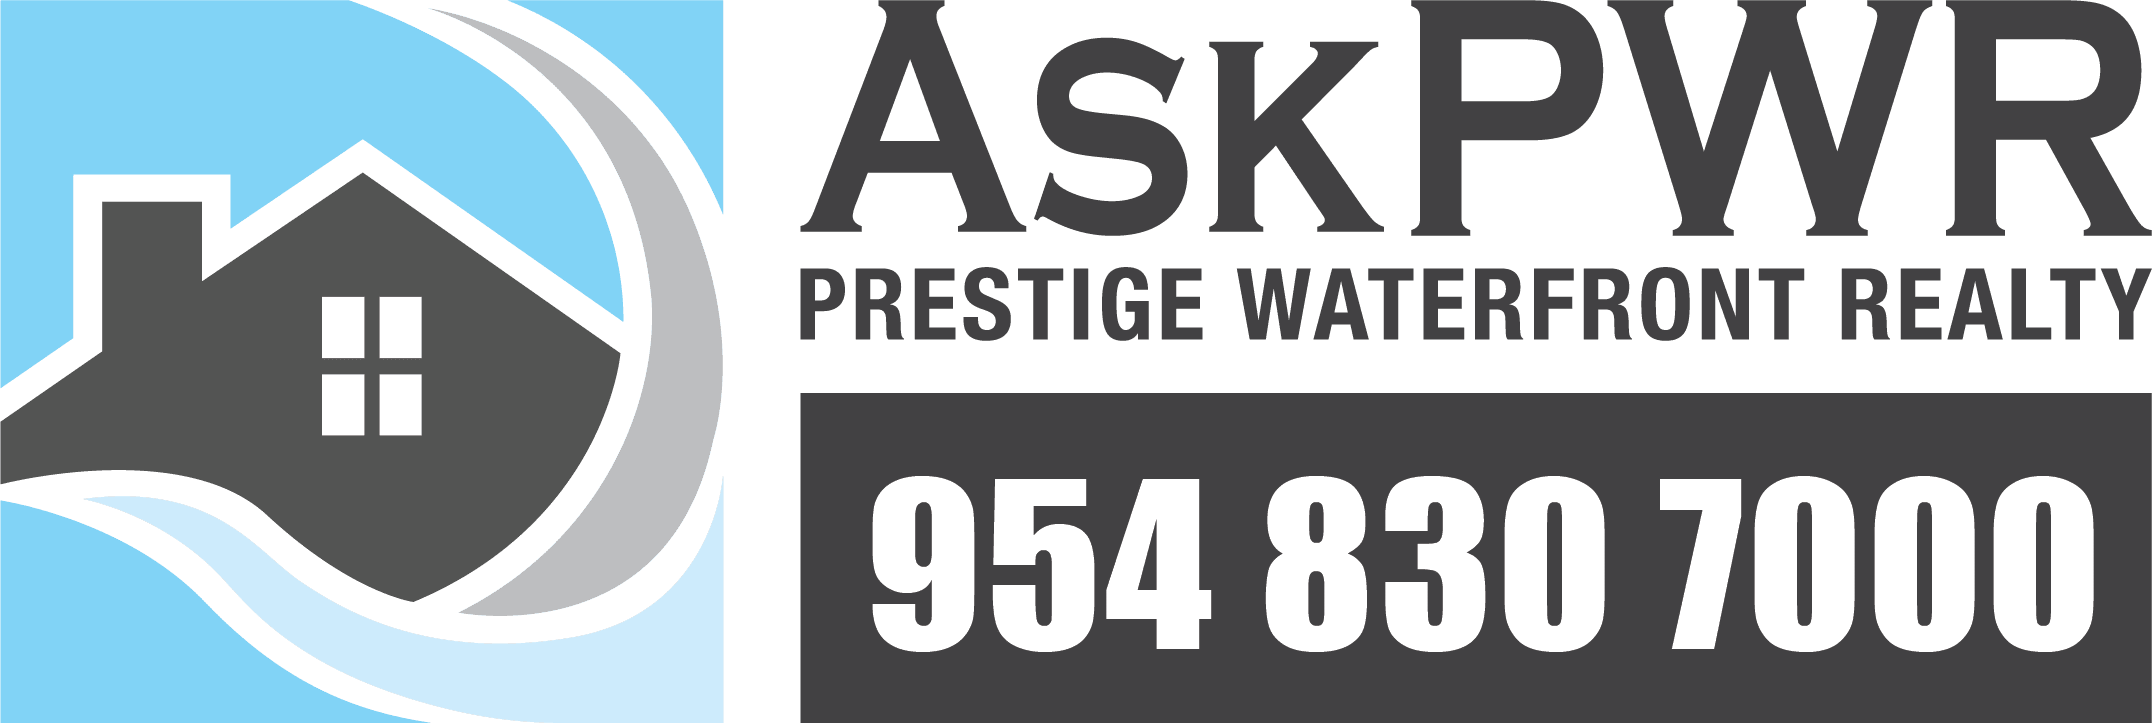 Prestige Waterfront Realty AskPWR